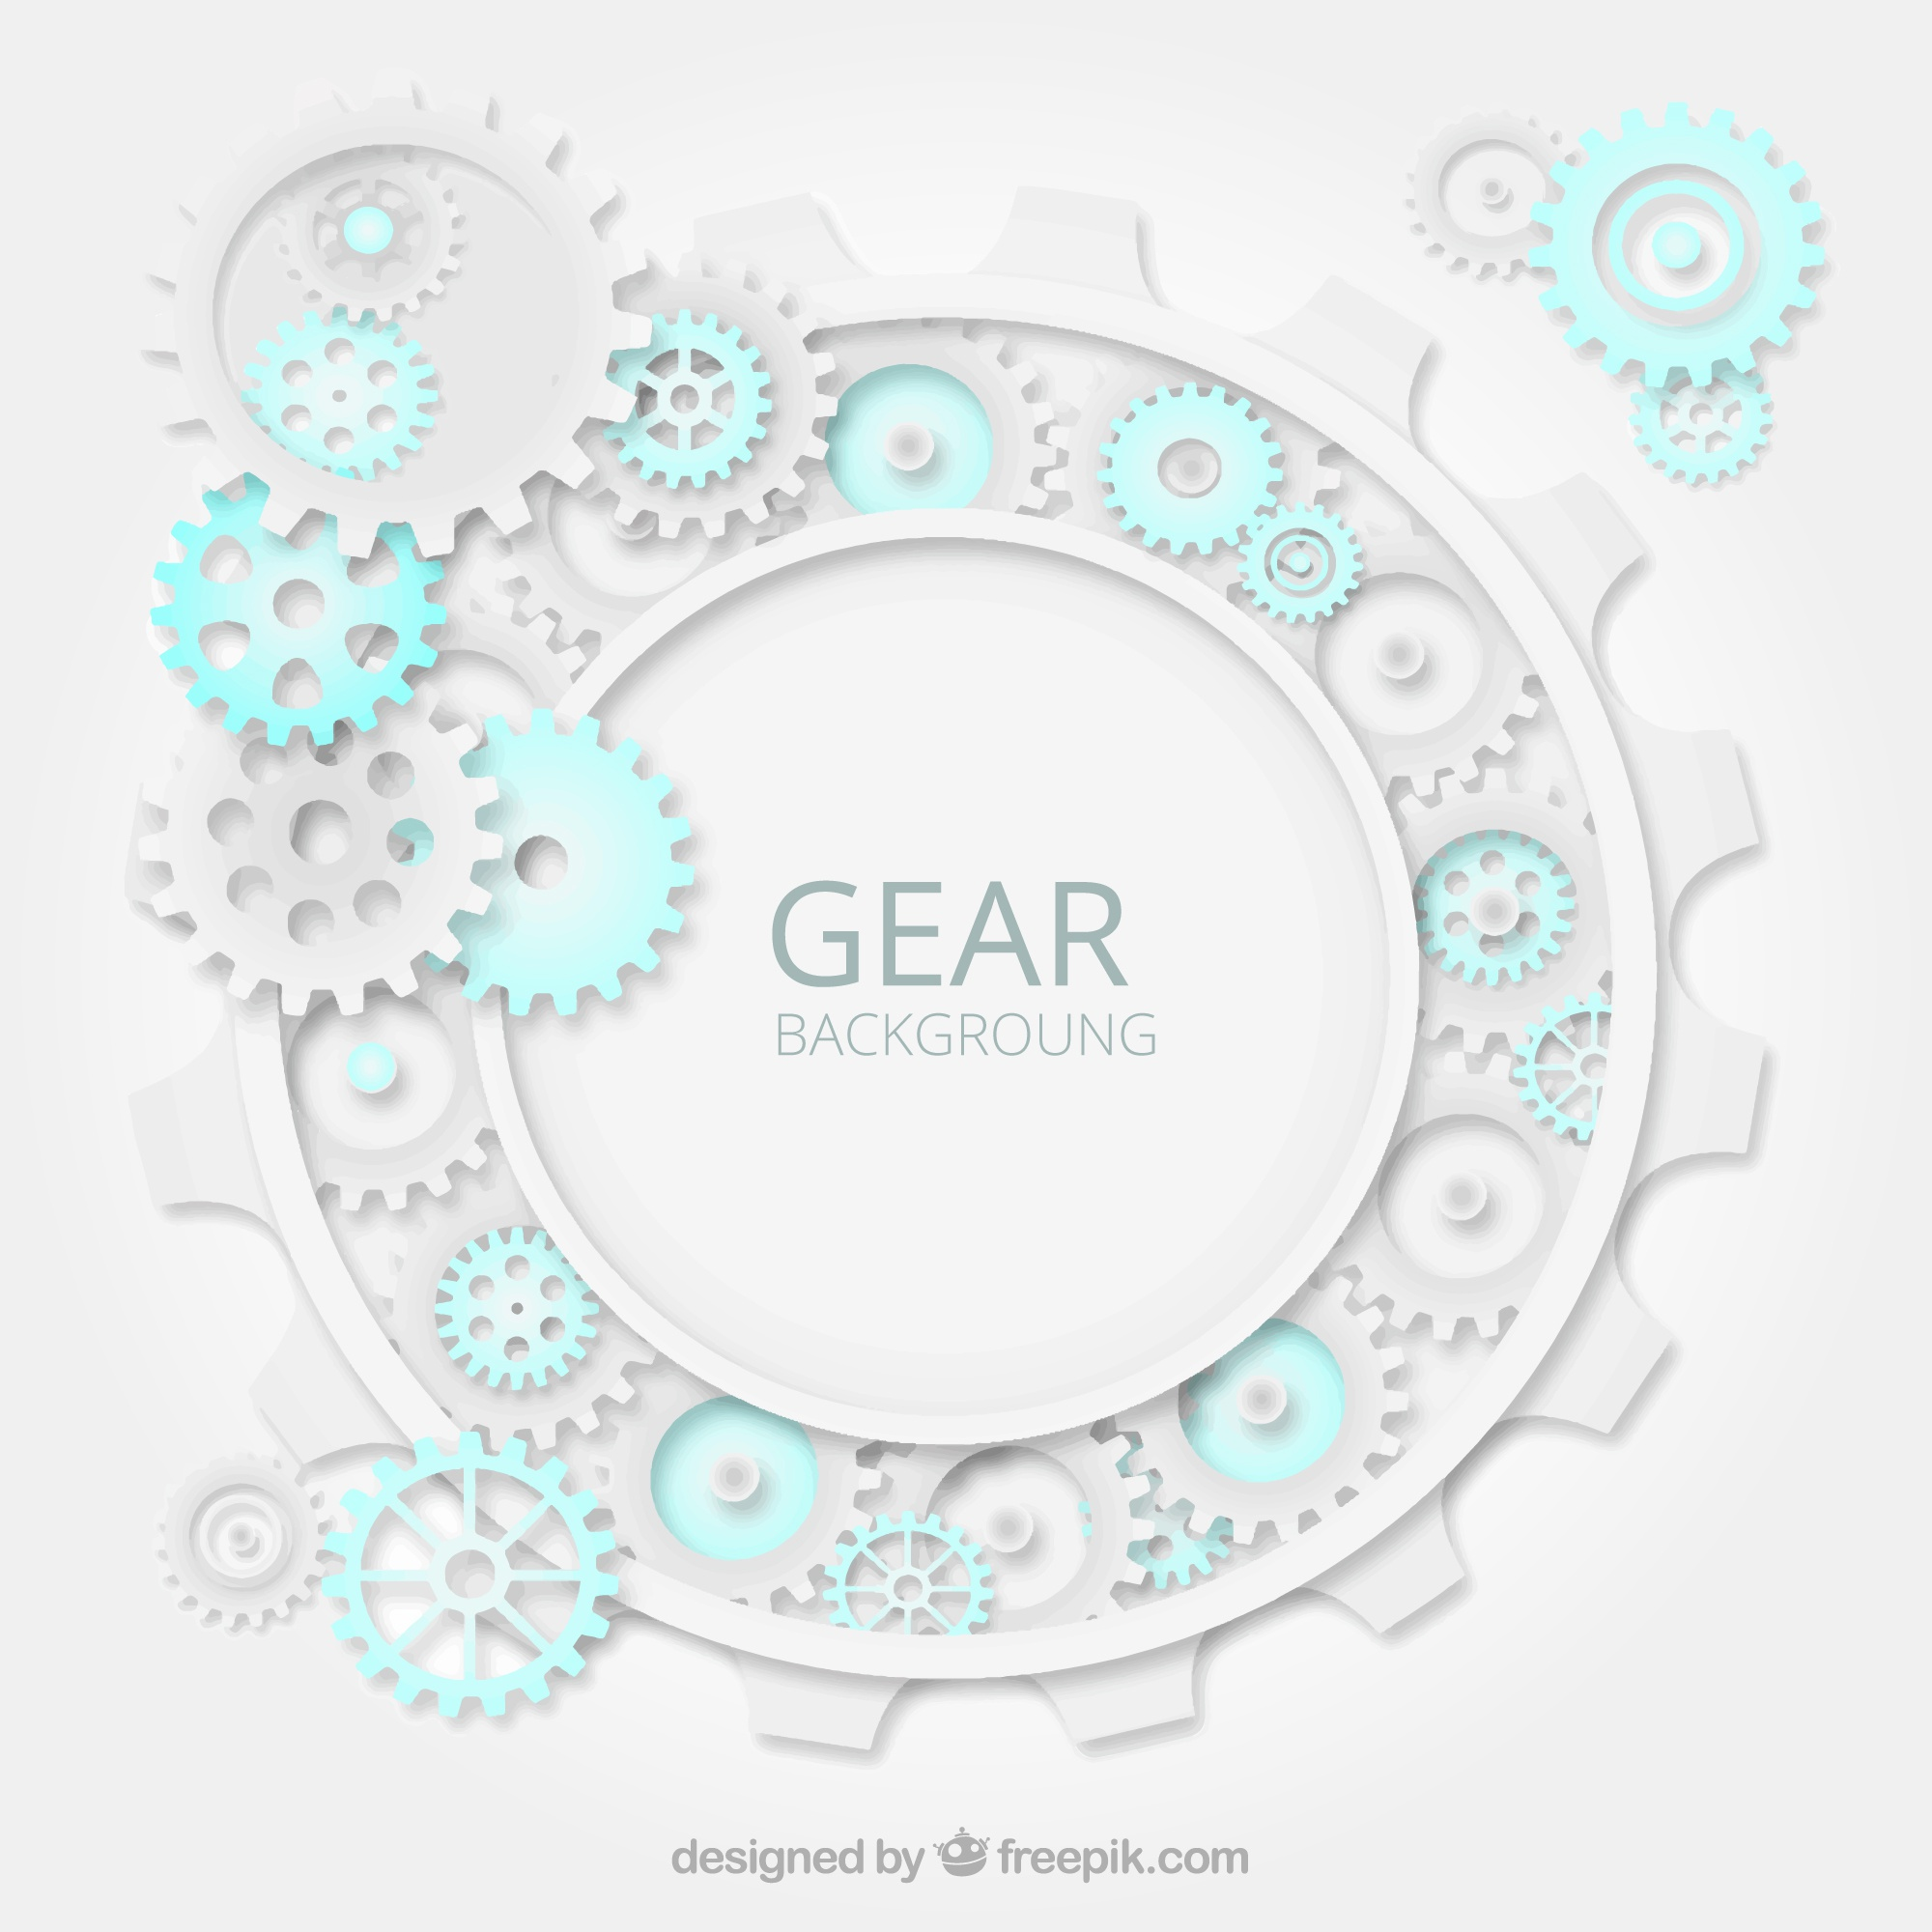 Gear background with blue details